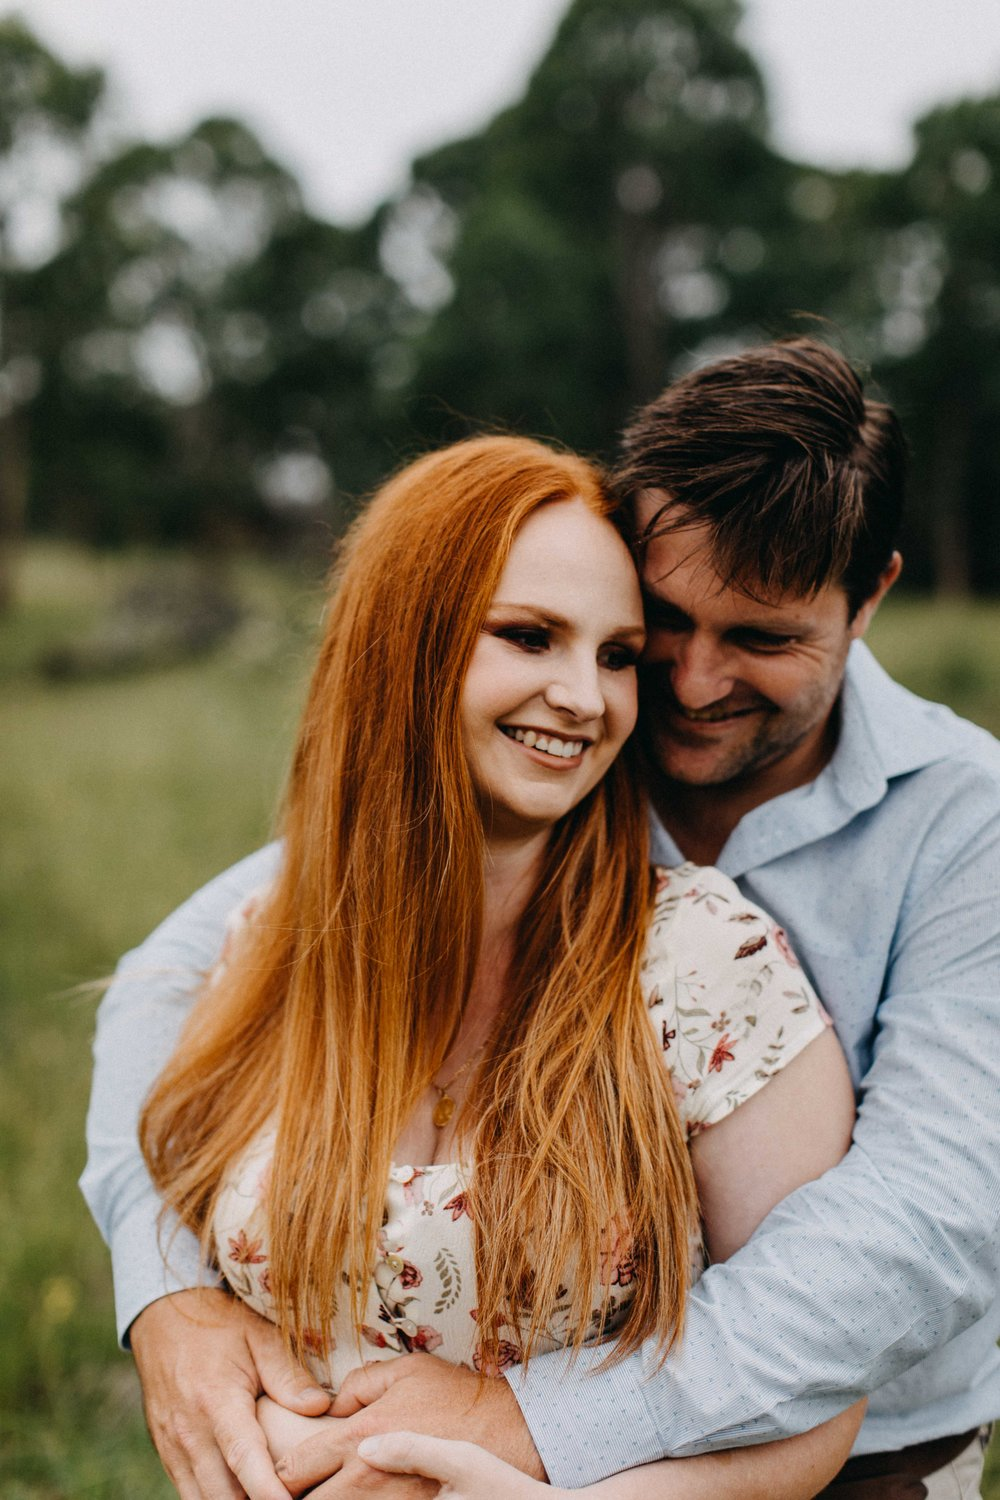 camden-engagement-session-wollondilly-photography-nadine-bernard-10.jpg